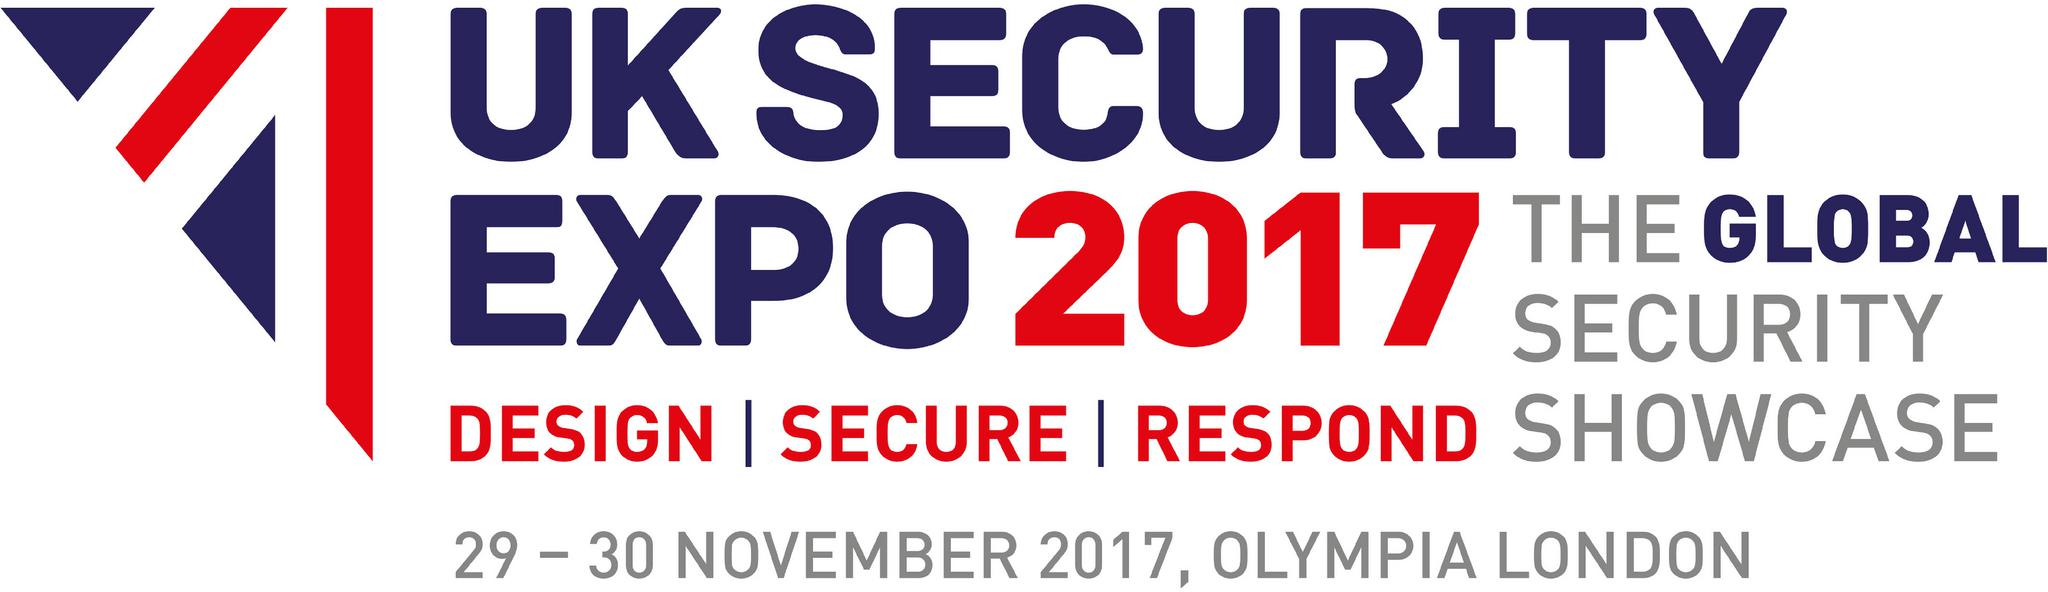 29th – 30th November 2017 – Egress exhibiting and sponsoring at the UK Security Expo 2017